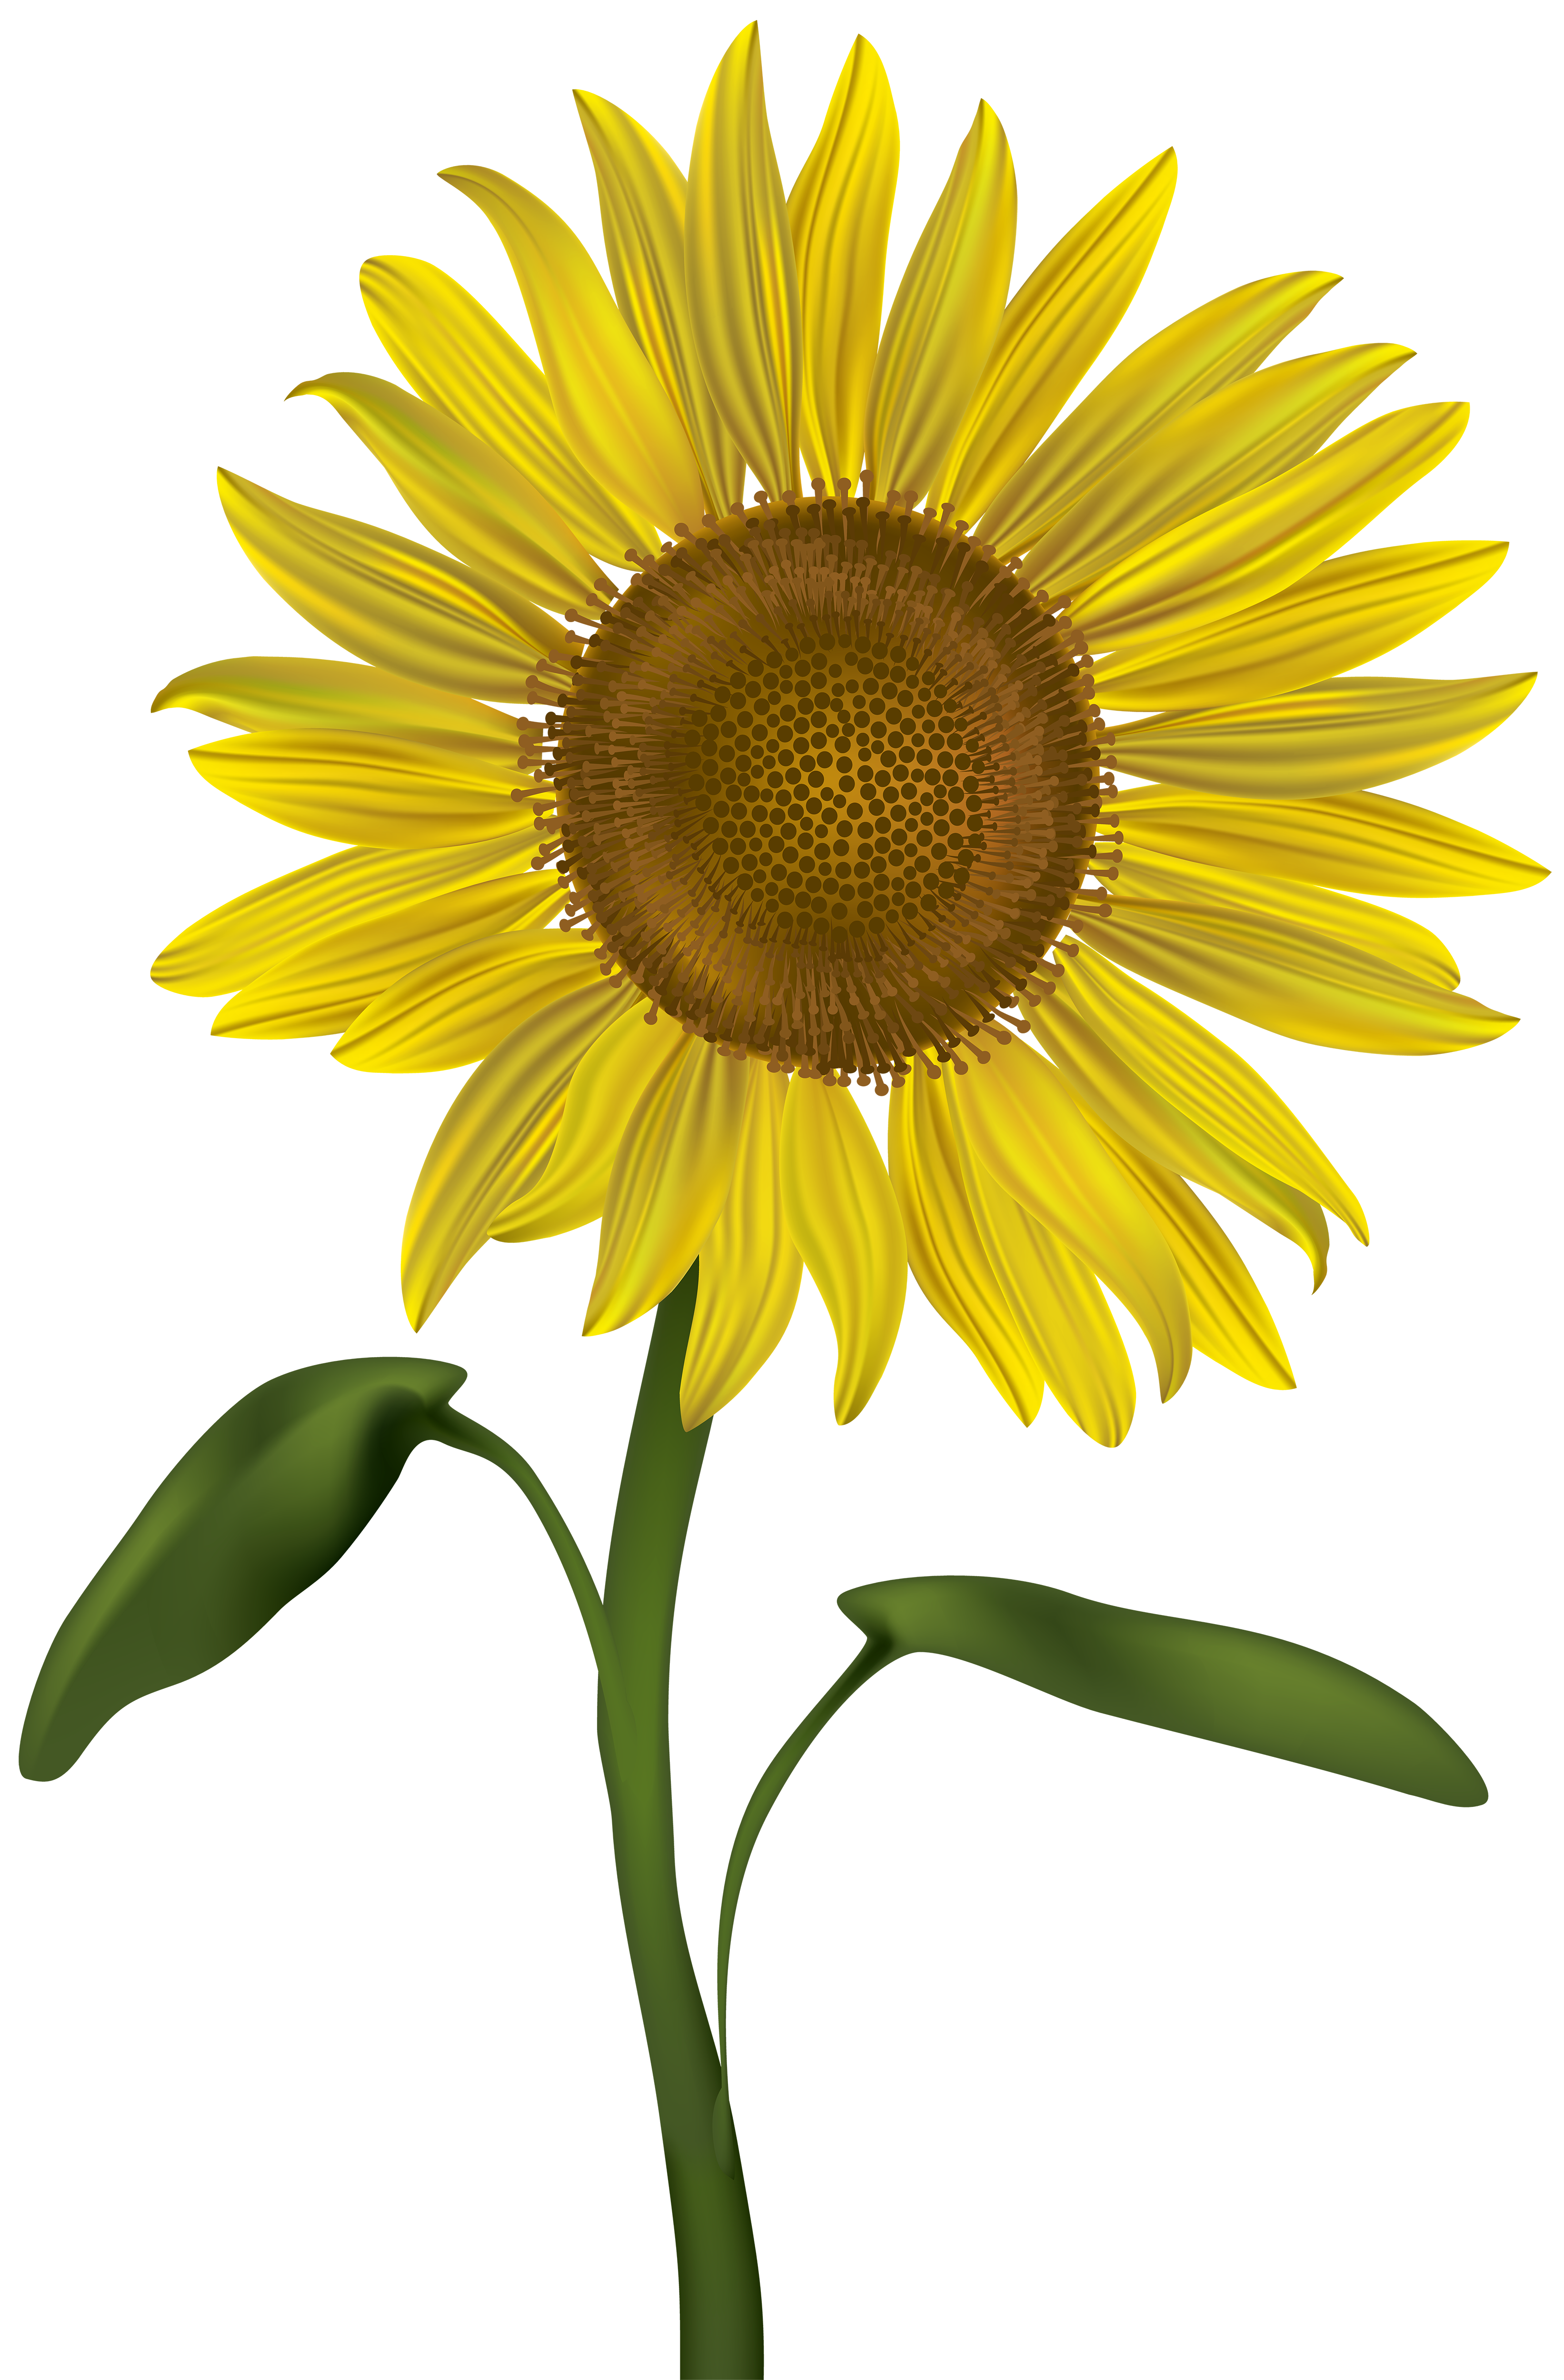 Sunflowers clipart sign svg library Sunflower Clipart | Free download best Sunflower Clipart on ... svg library